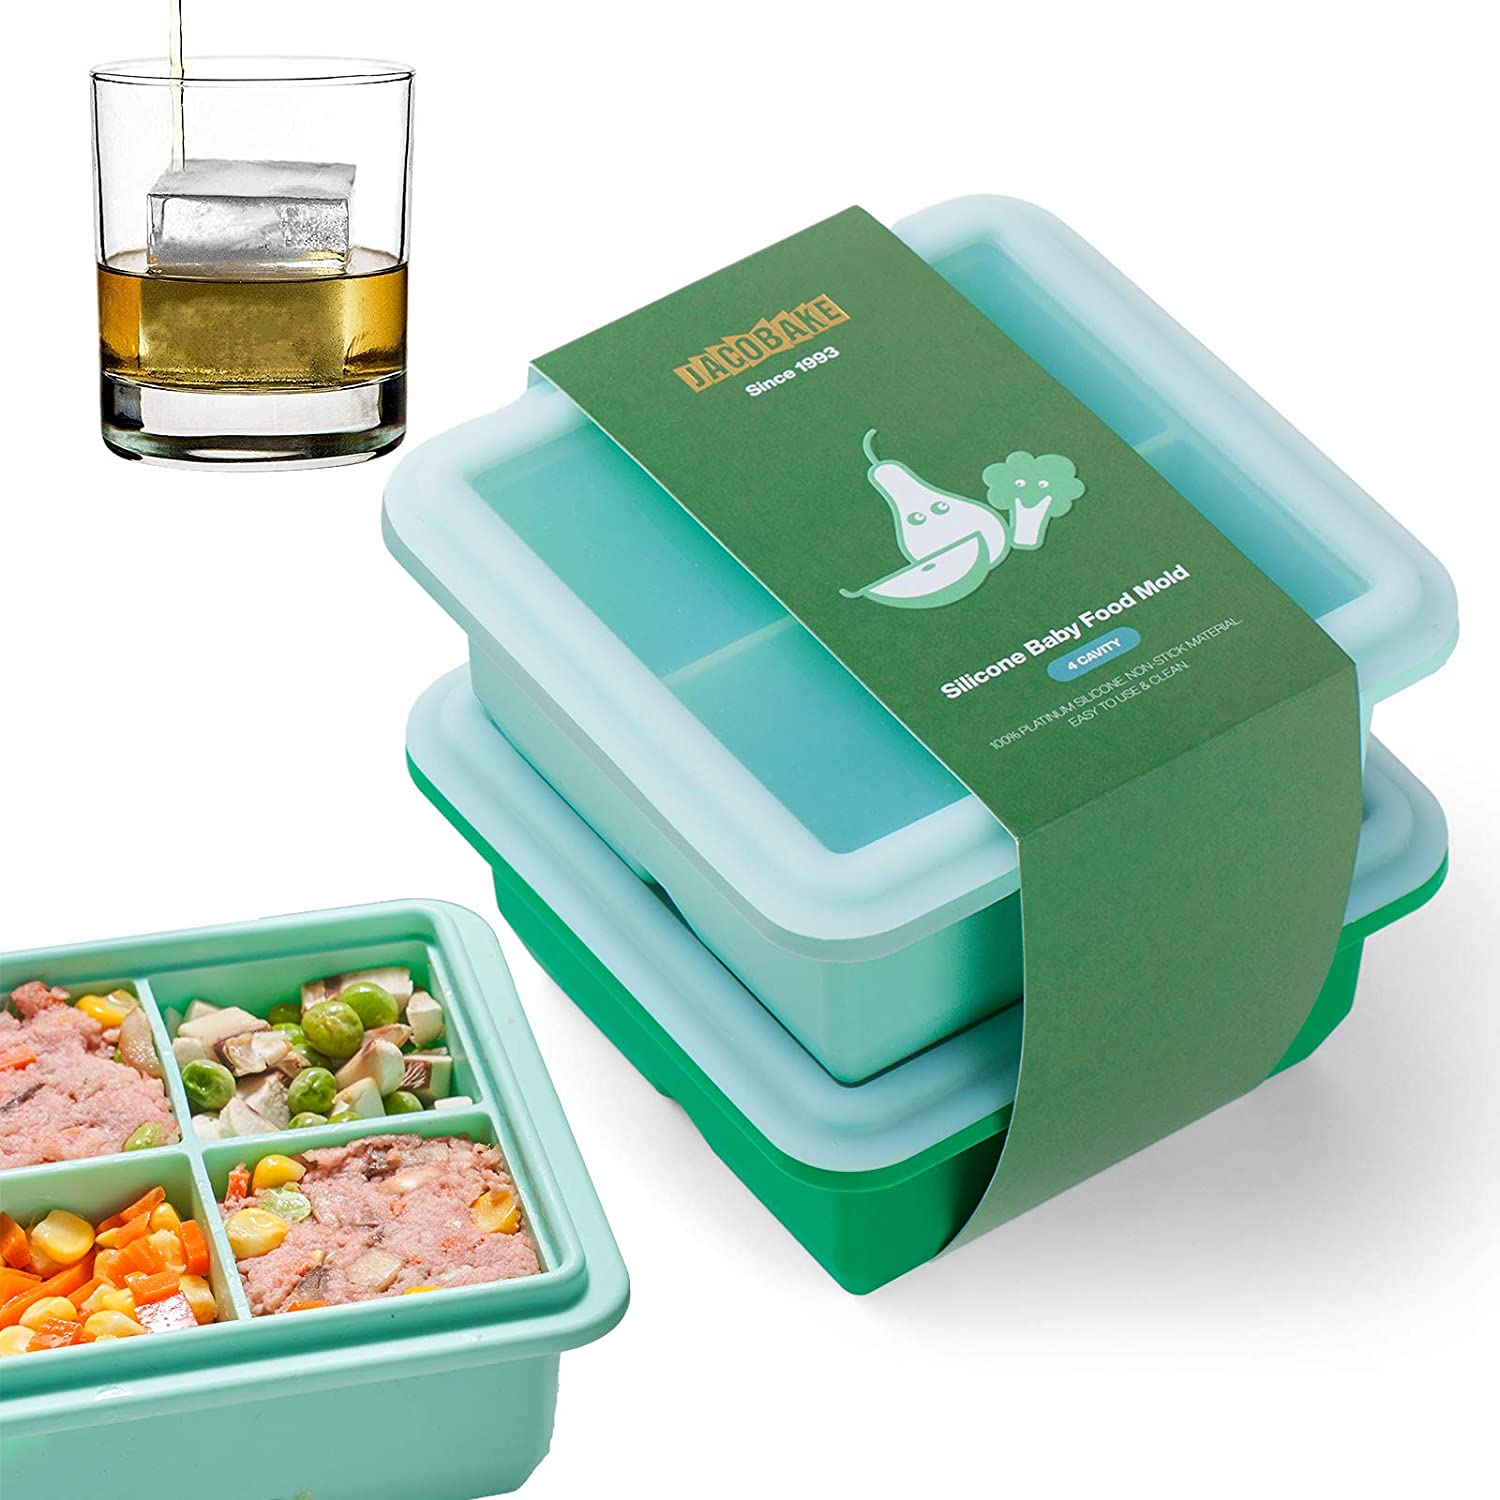 JACOBAKE 2 Pack Large Ice Cube Tray with Lids, BPA Free Reusable Baby Food Freezer Tray, Easy Release Silicone Ice Cube Molds for Whiskey, Cocktails, Flexible and Stackable (4 Cavity, Green)